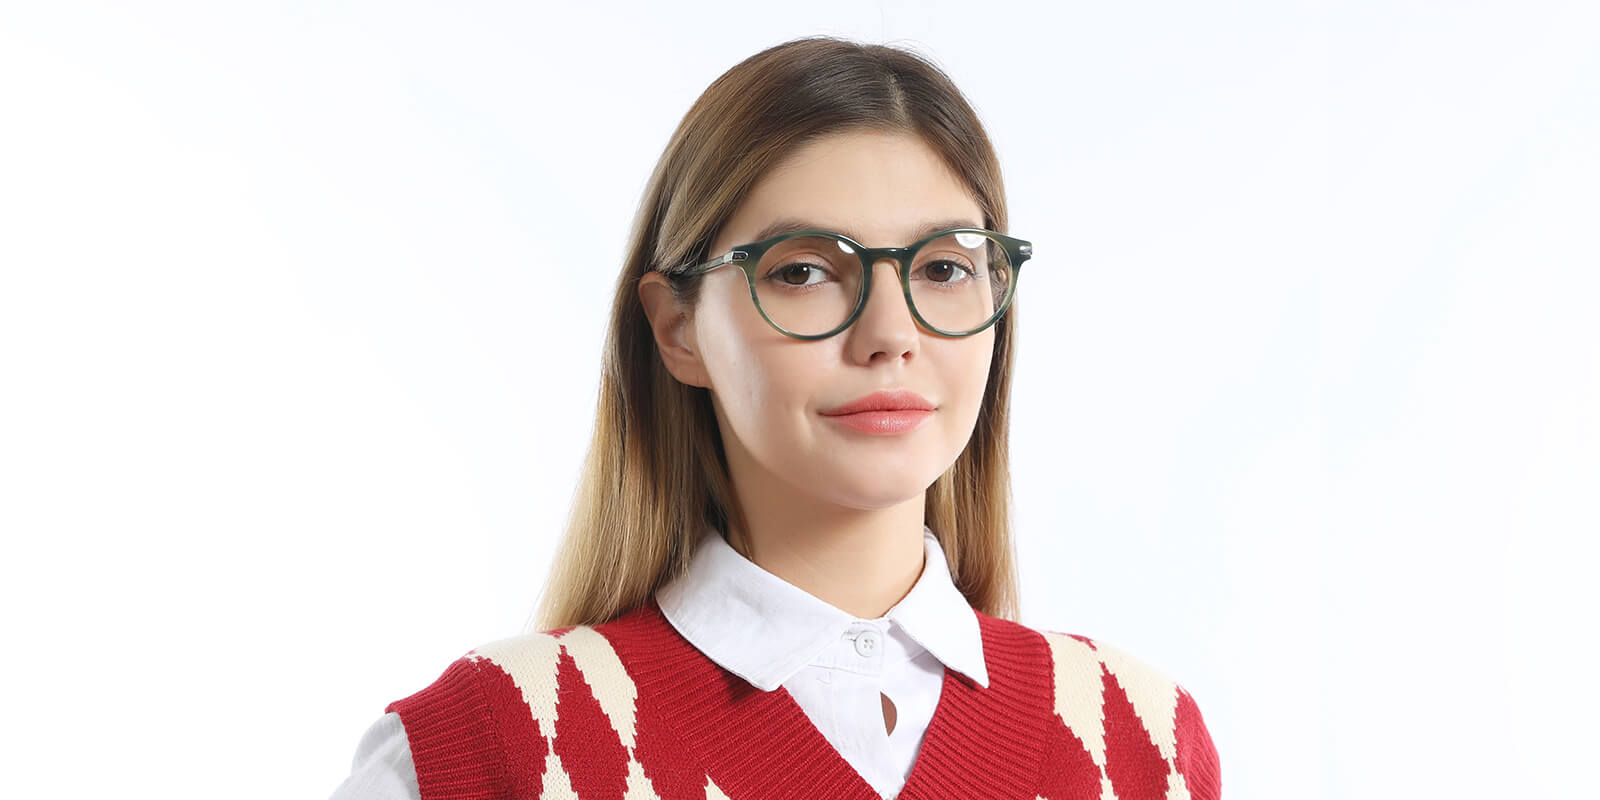 Hudson-Retro round glasses for womens with bright multi colors